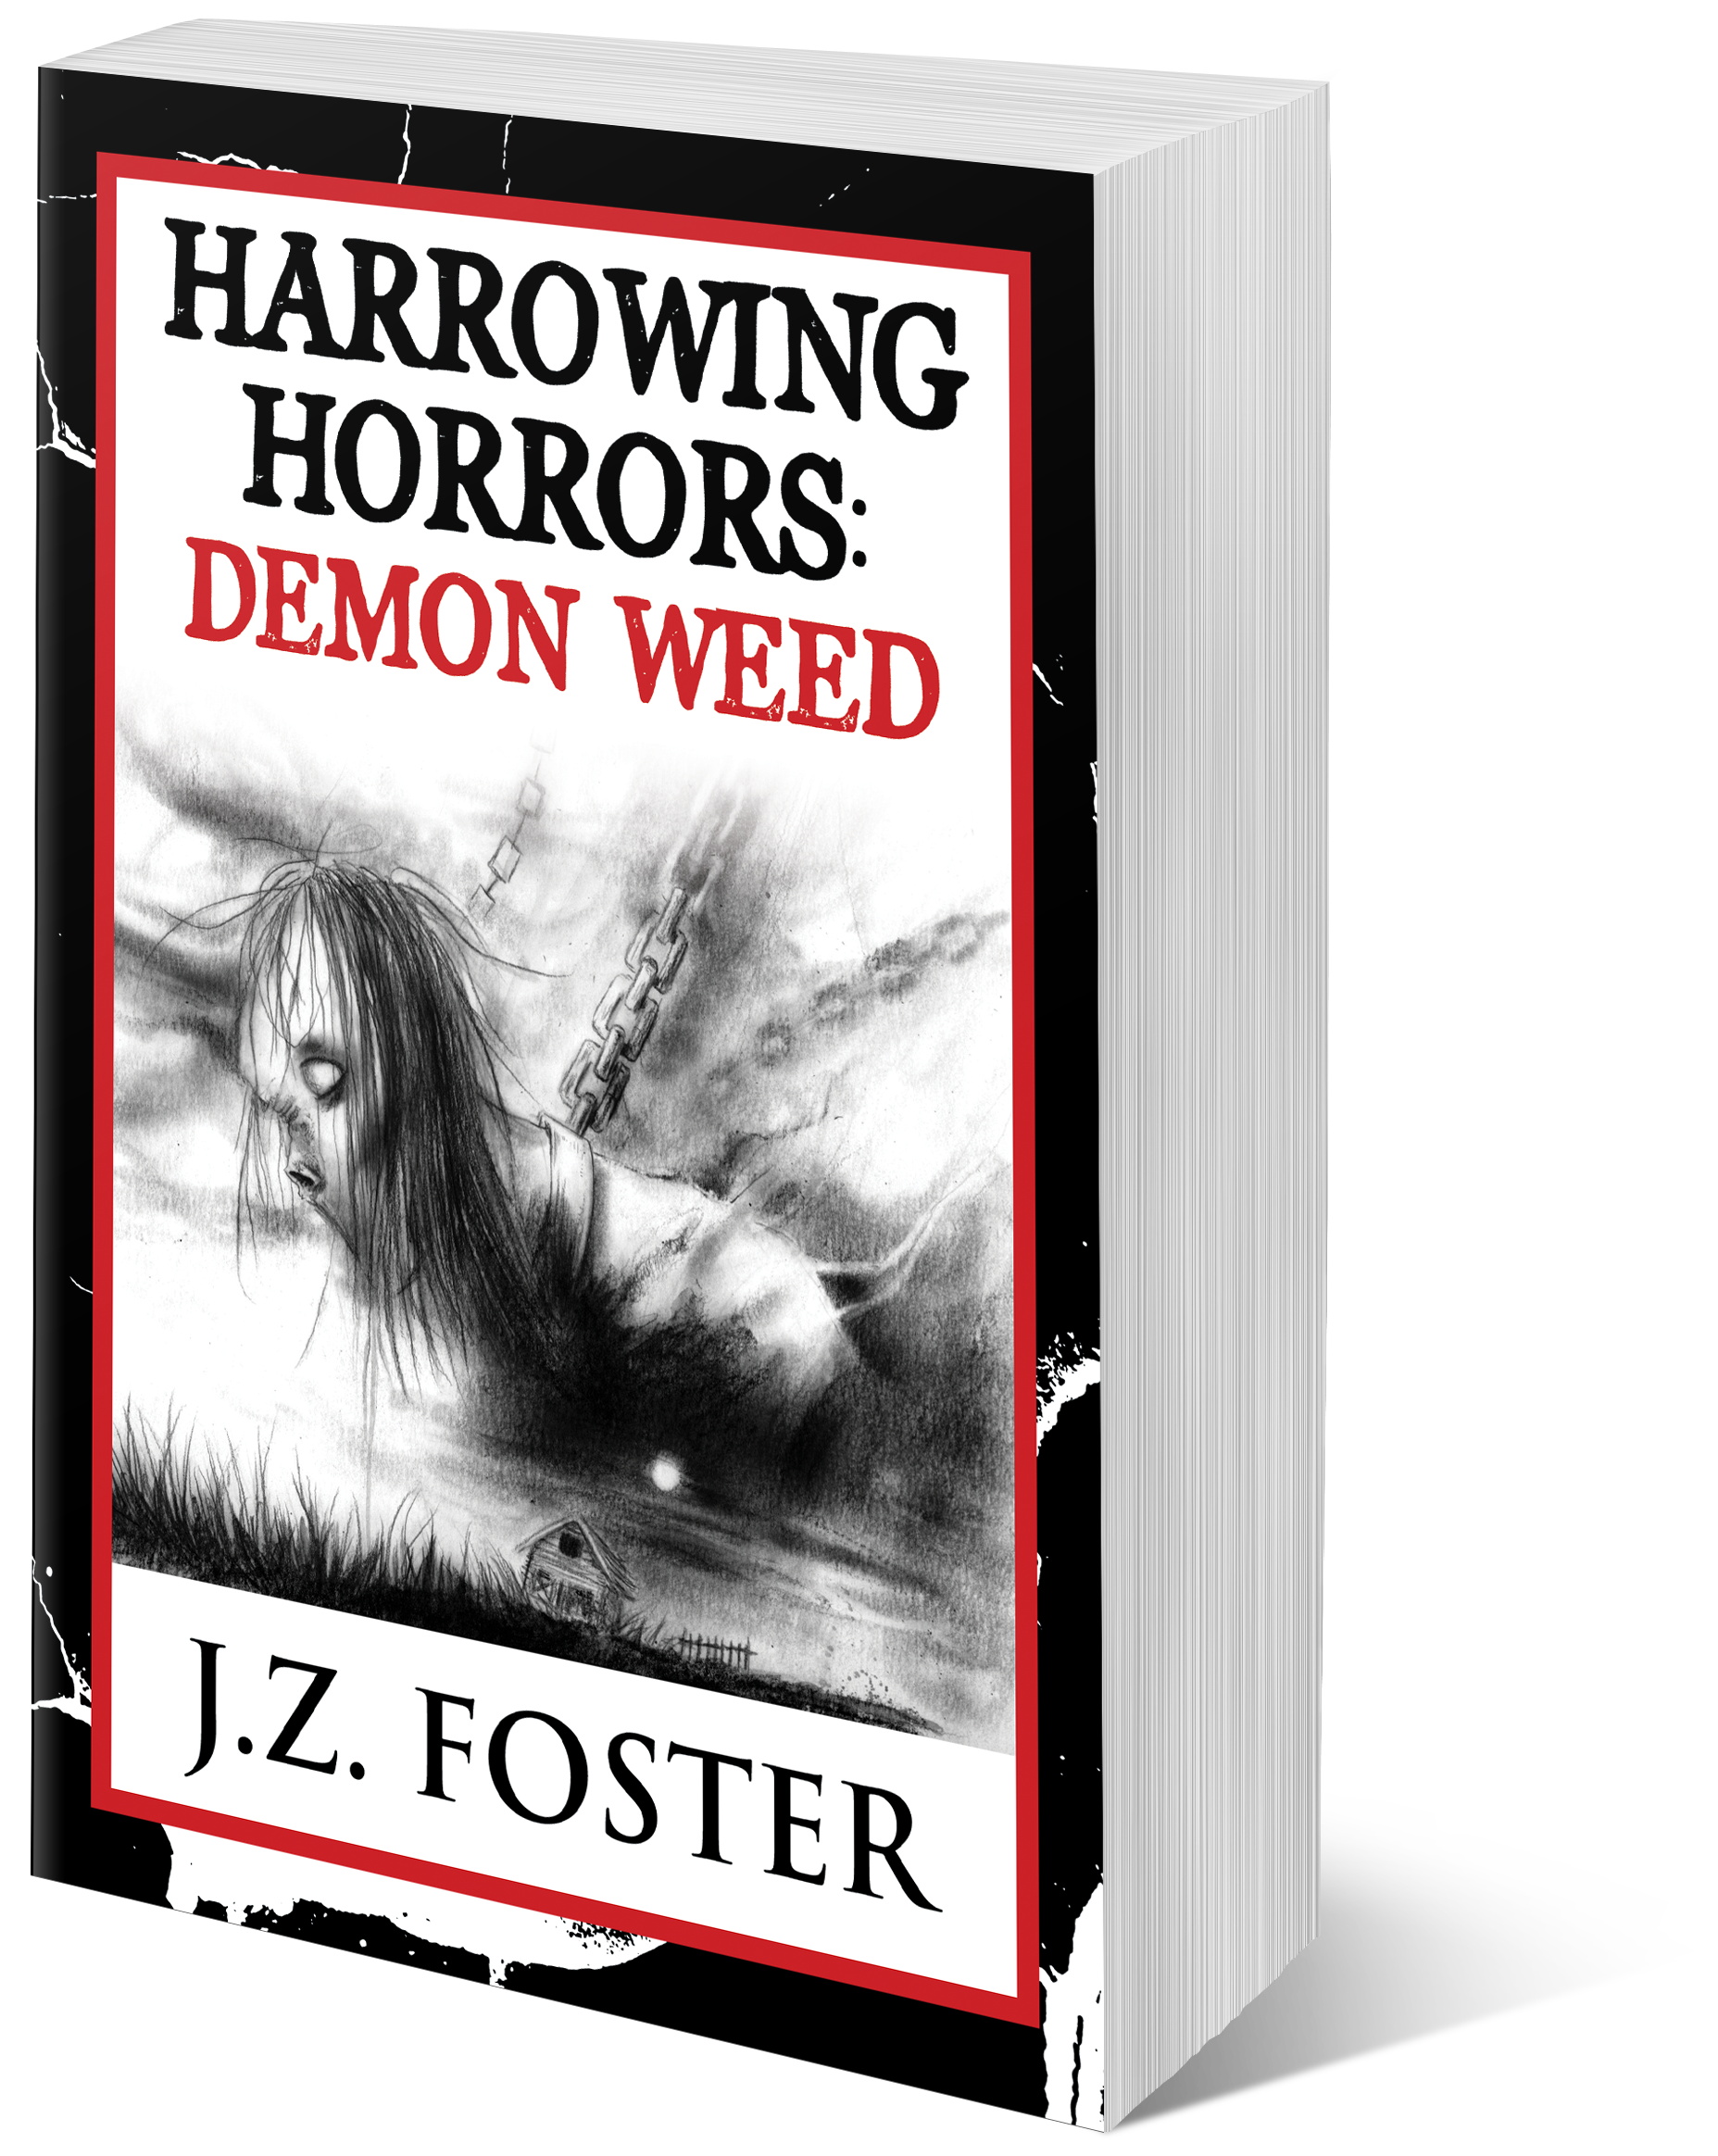 Harrowing Horrors:Demon Weed - Want a FREE story from J.Z. Foster?Click the button to get yours now!